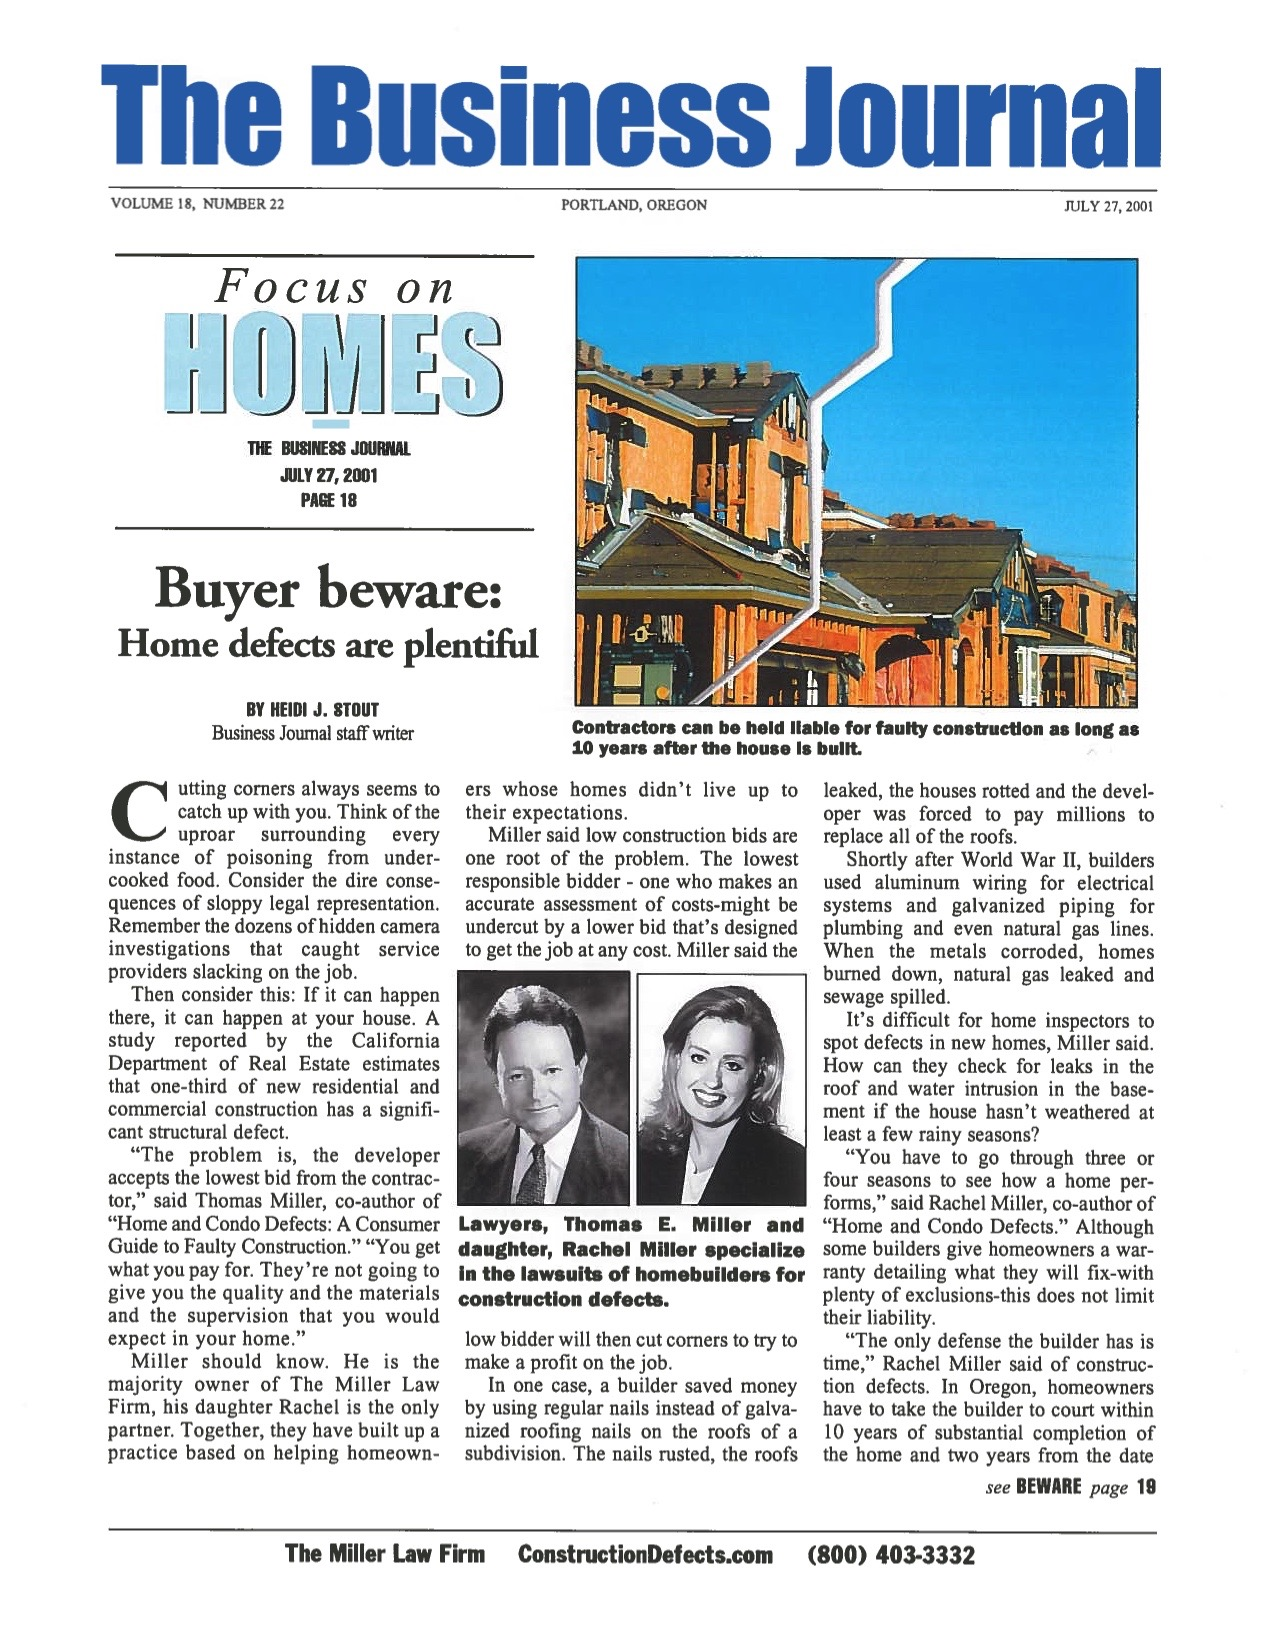 The Business Journal - Buyer Beware - Home Defects Are Painful